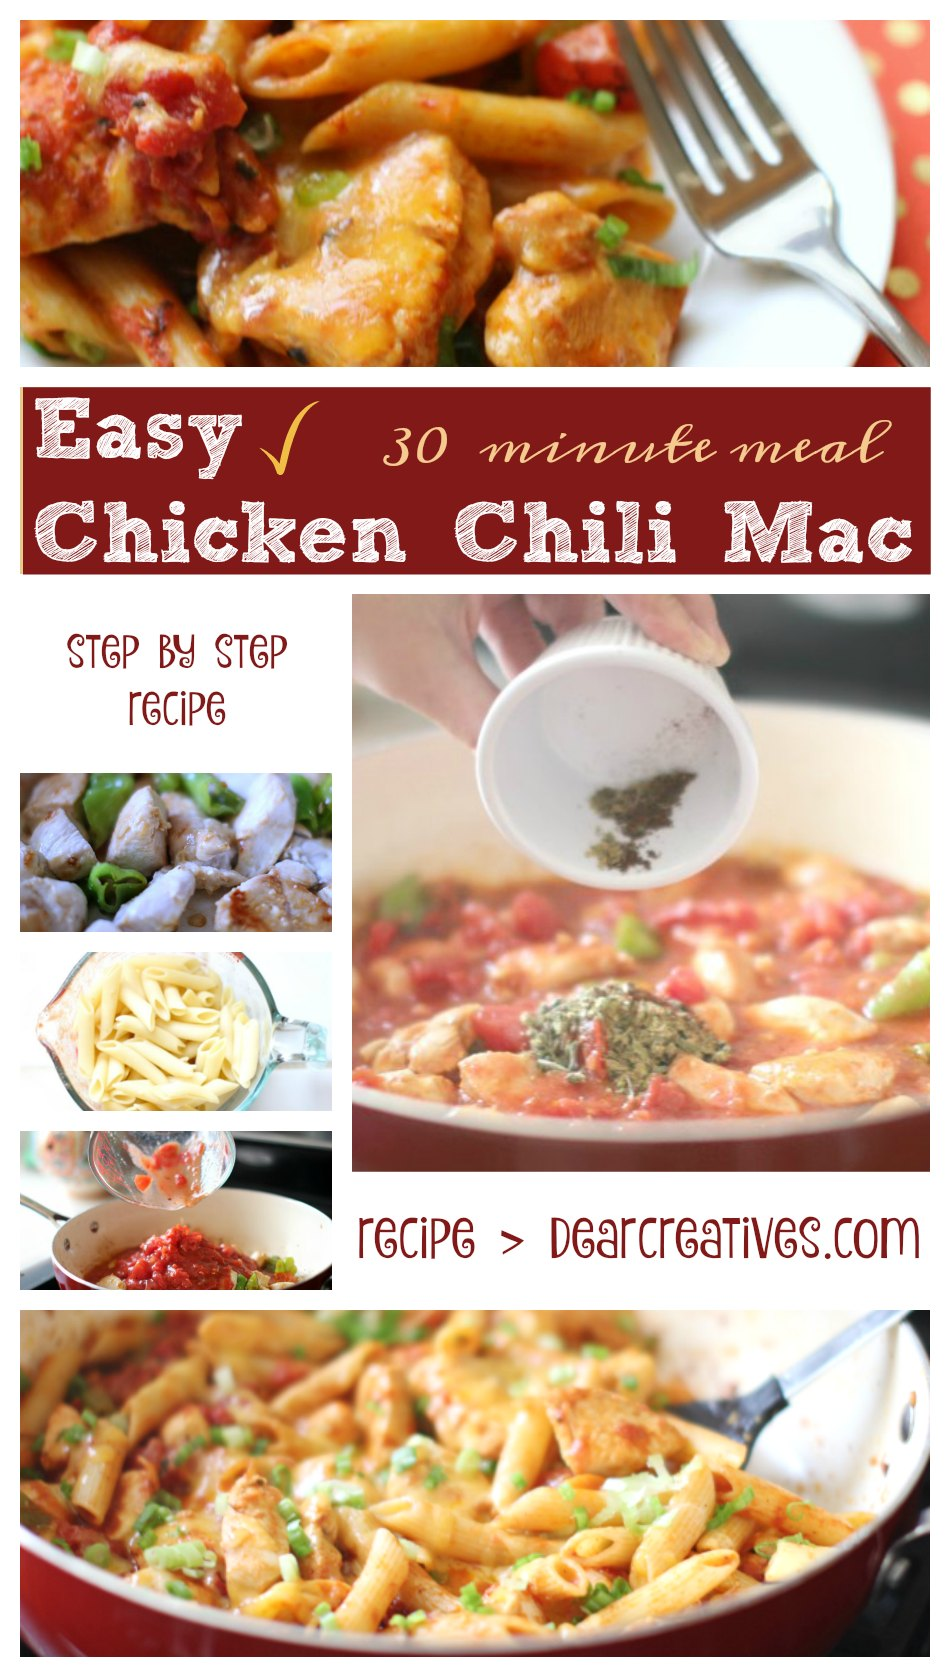 Chicken Chili Mac An Easy chicken recipe. Cooks up in 30 minute recipe that the whole family will enjoy!